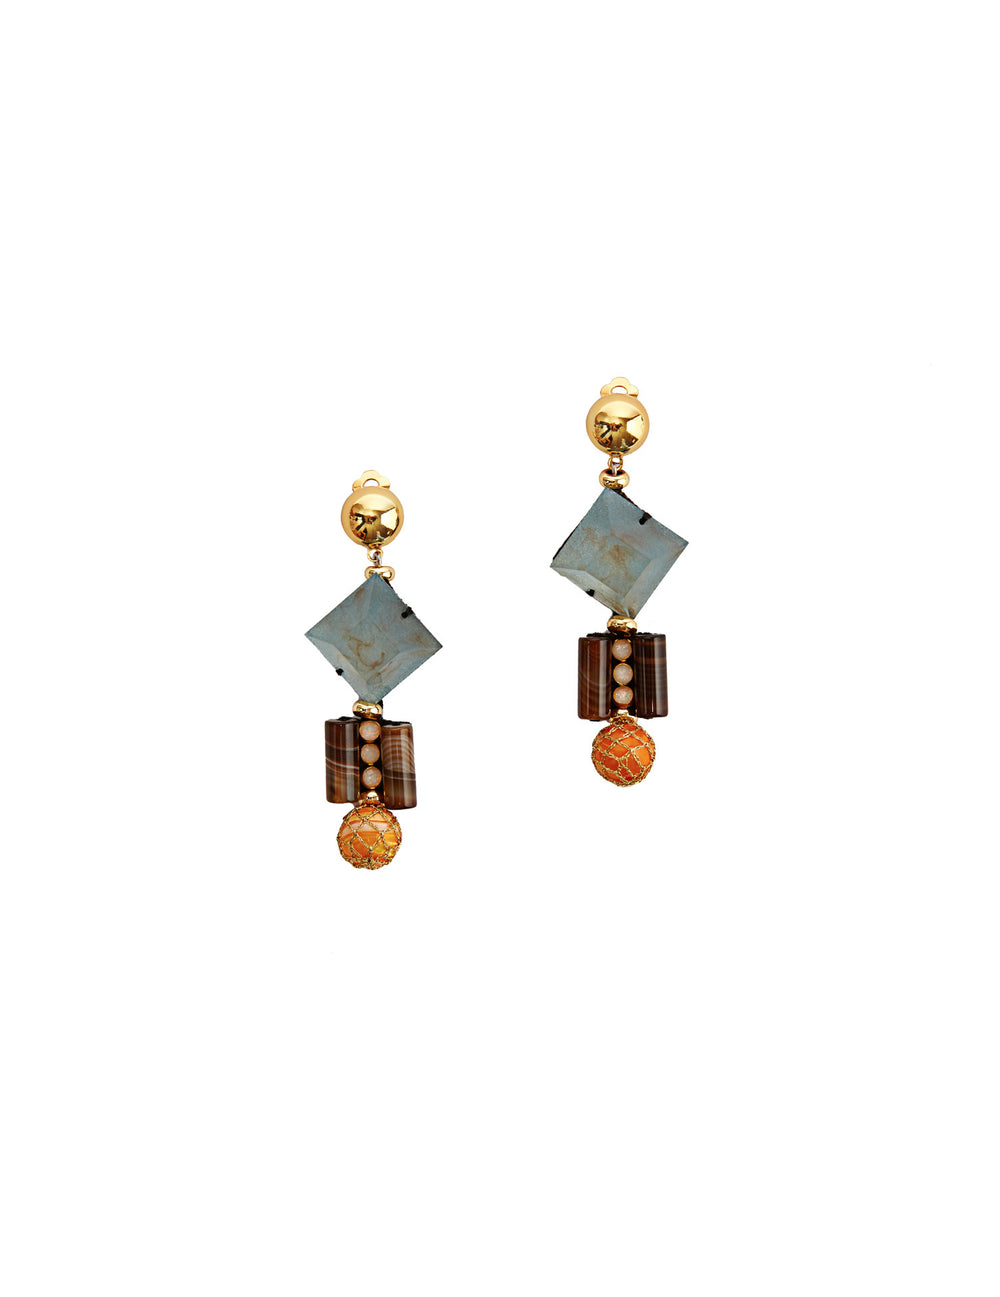 Jenna Celadon earrings (post)